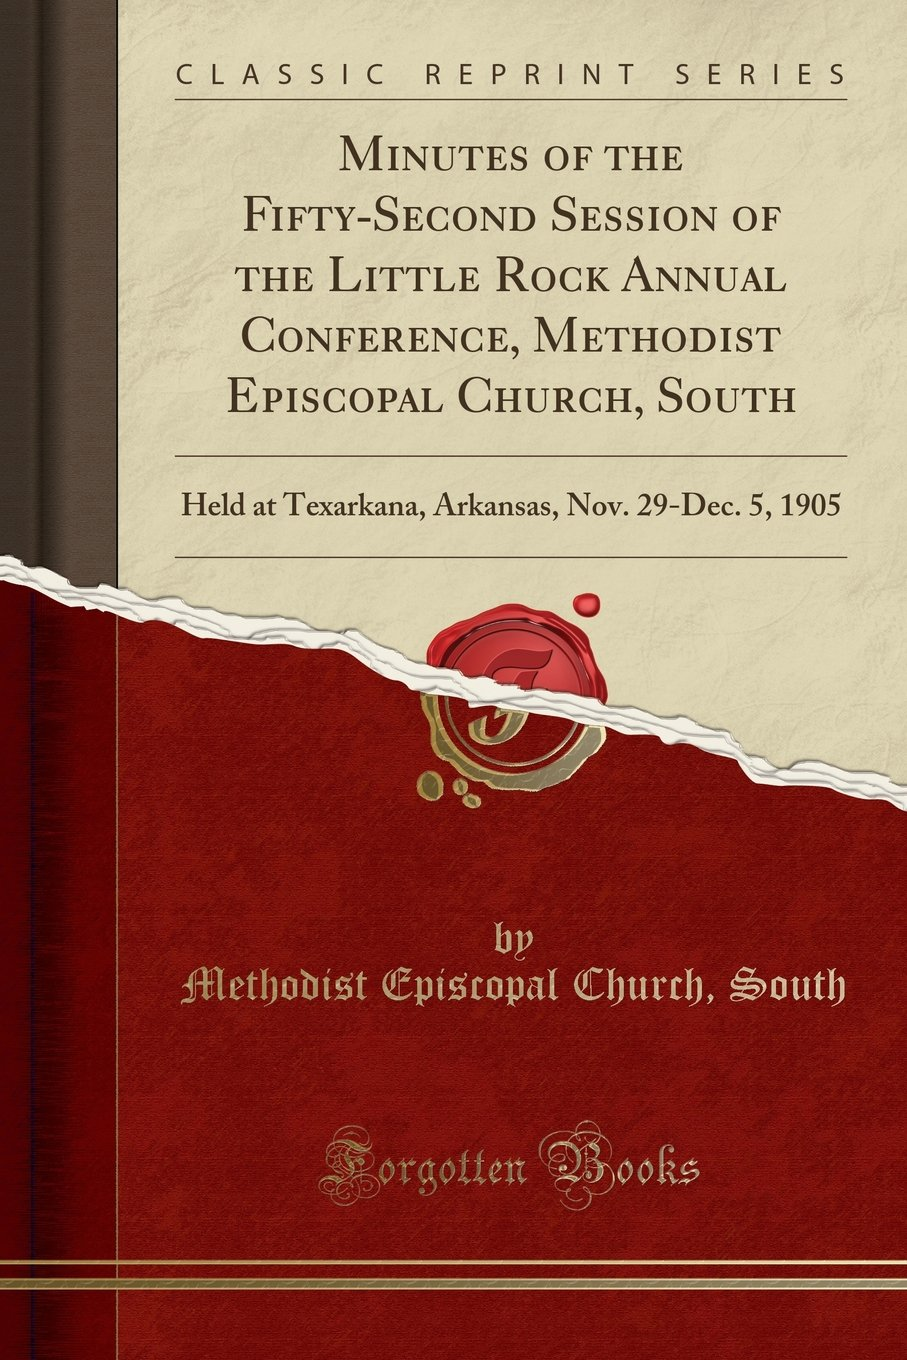 Download Minutes of the Fifty-Second Session of the Little Rock Annual Conference, Methodist Episcopal Church, South: Held at Texarkana, Arkansas, Nov. 29-Dec. 5, 1905 (Classic Reprint) pdf